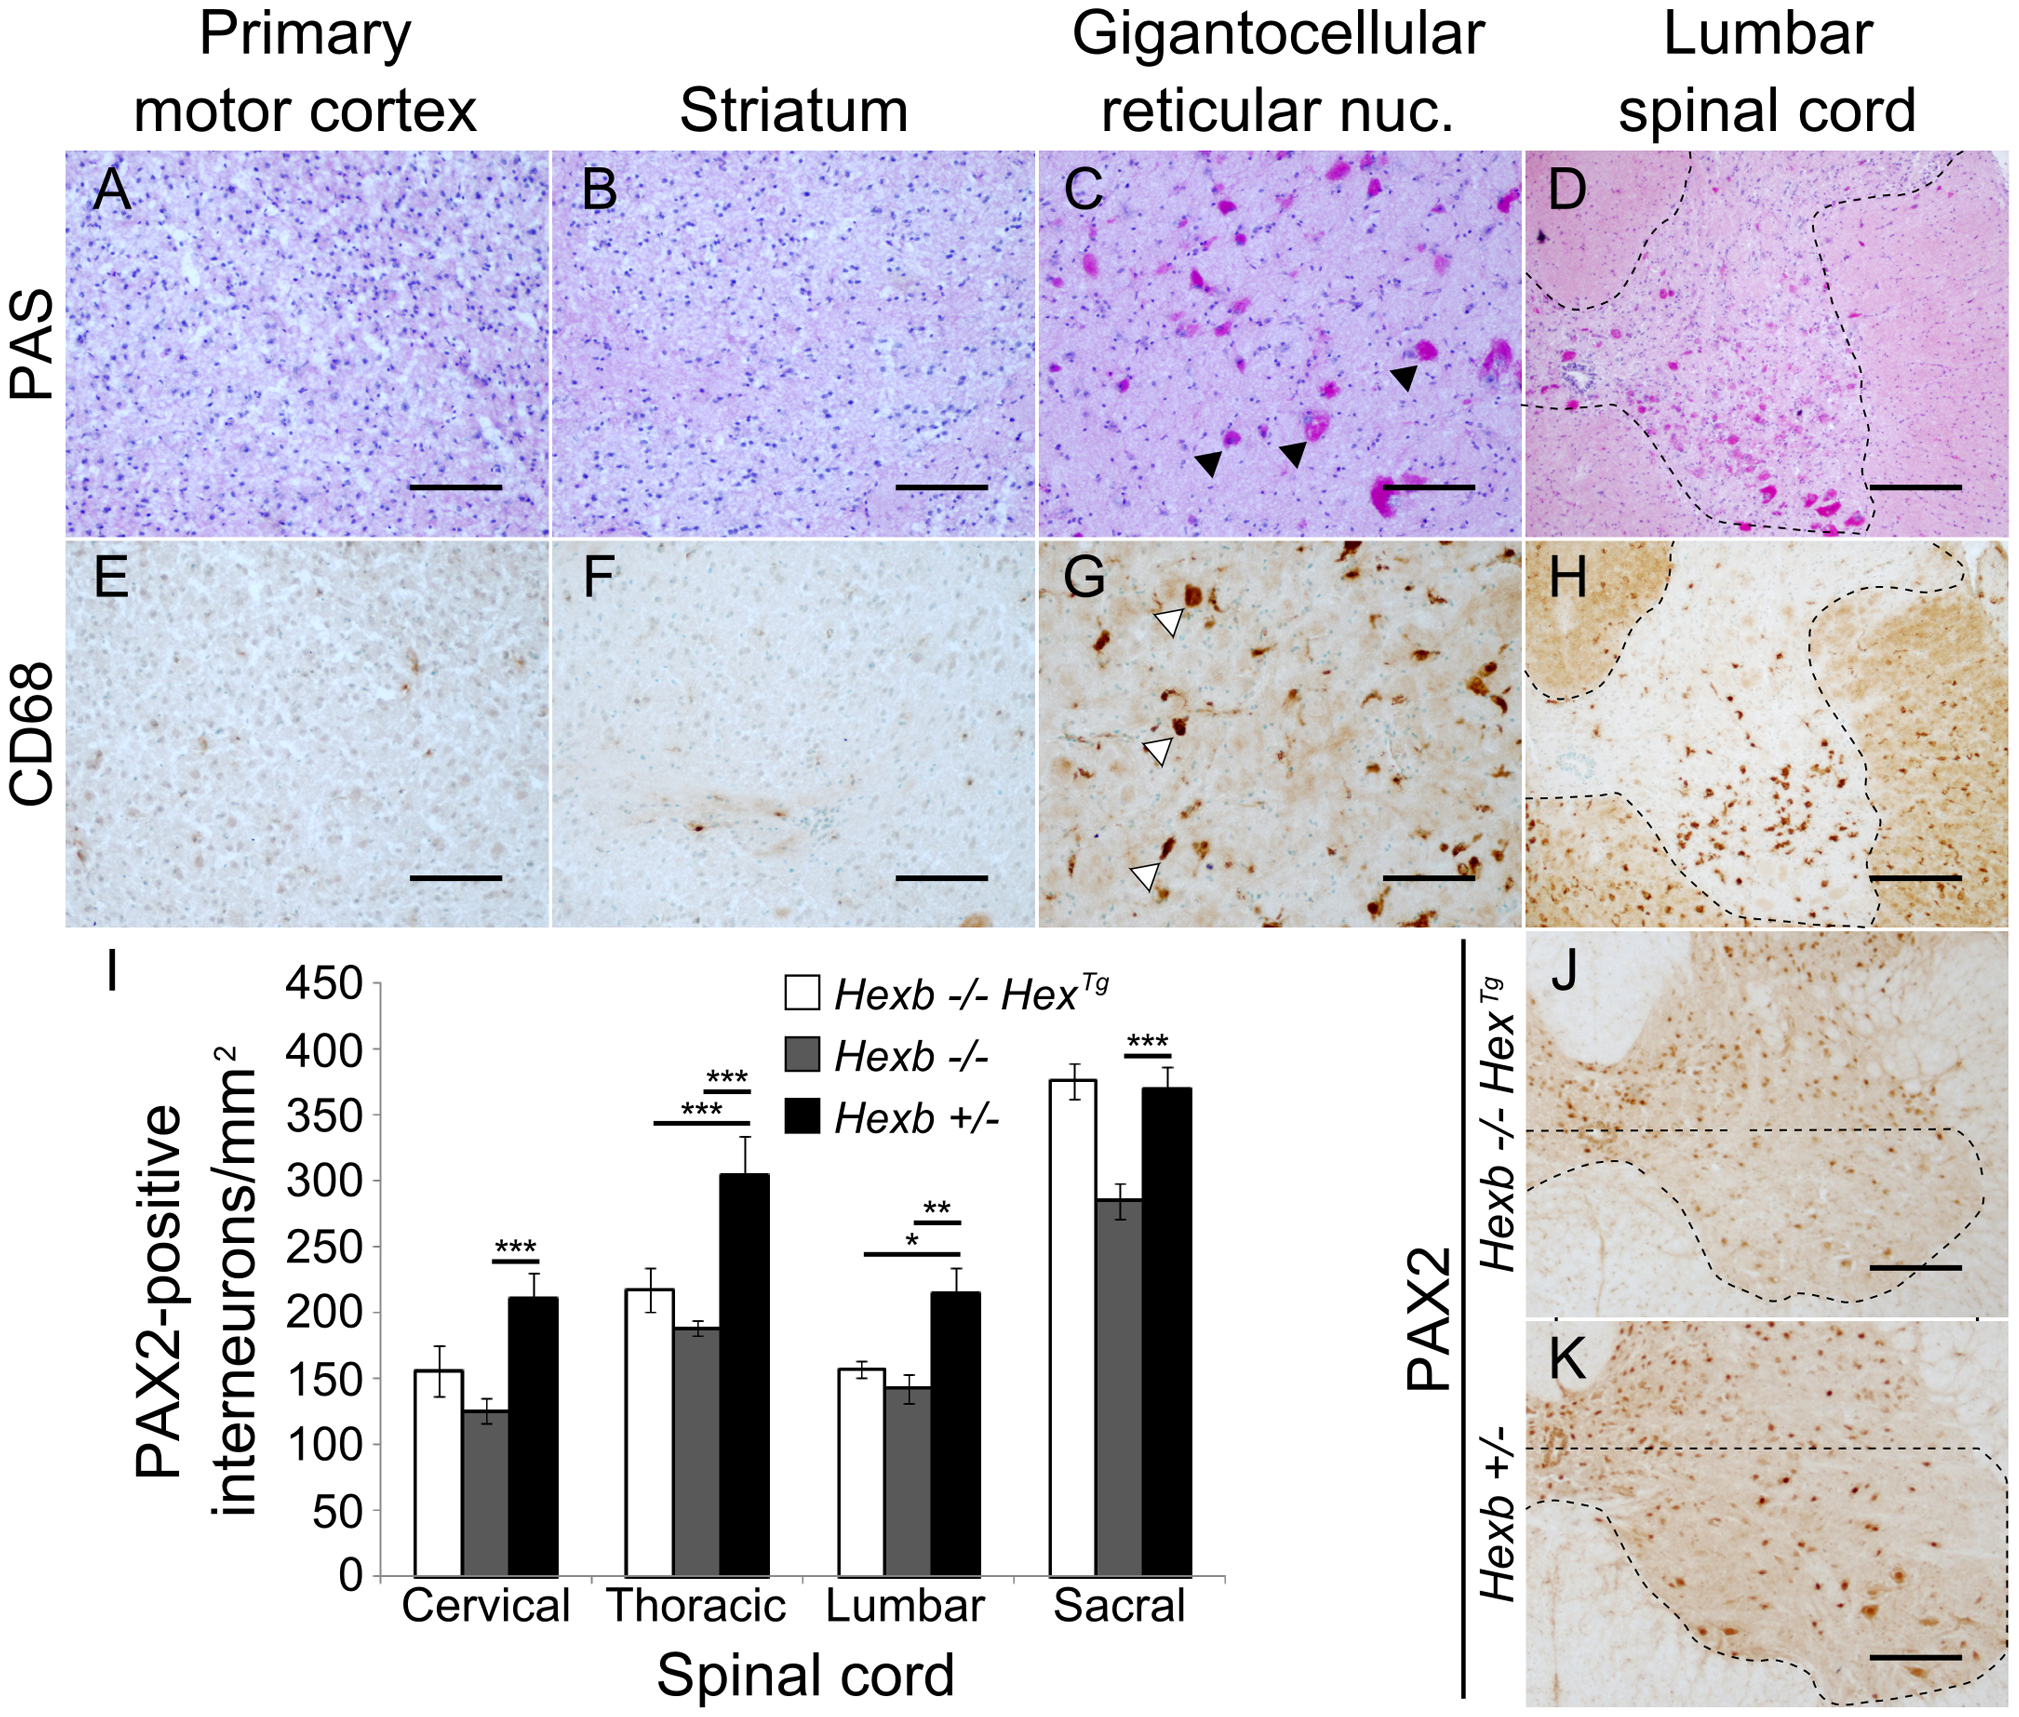 Localized glycolipid storage and microgliosis in <i>Hexb−/−Hex<sup>Tg</sup></i> mice at humane endpoint.